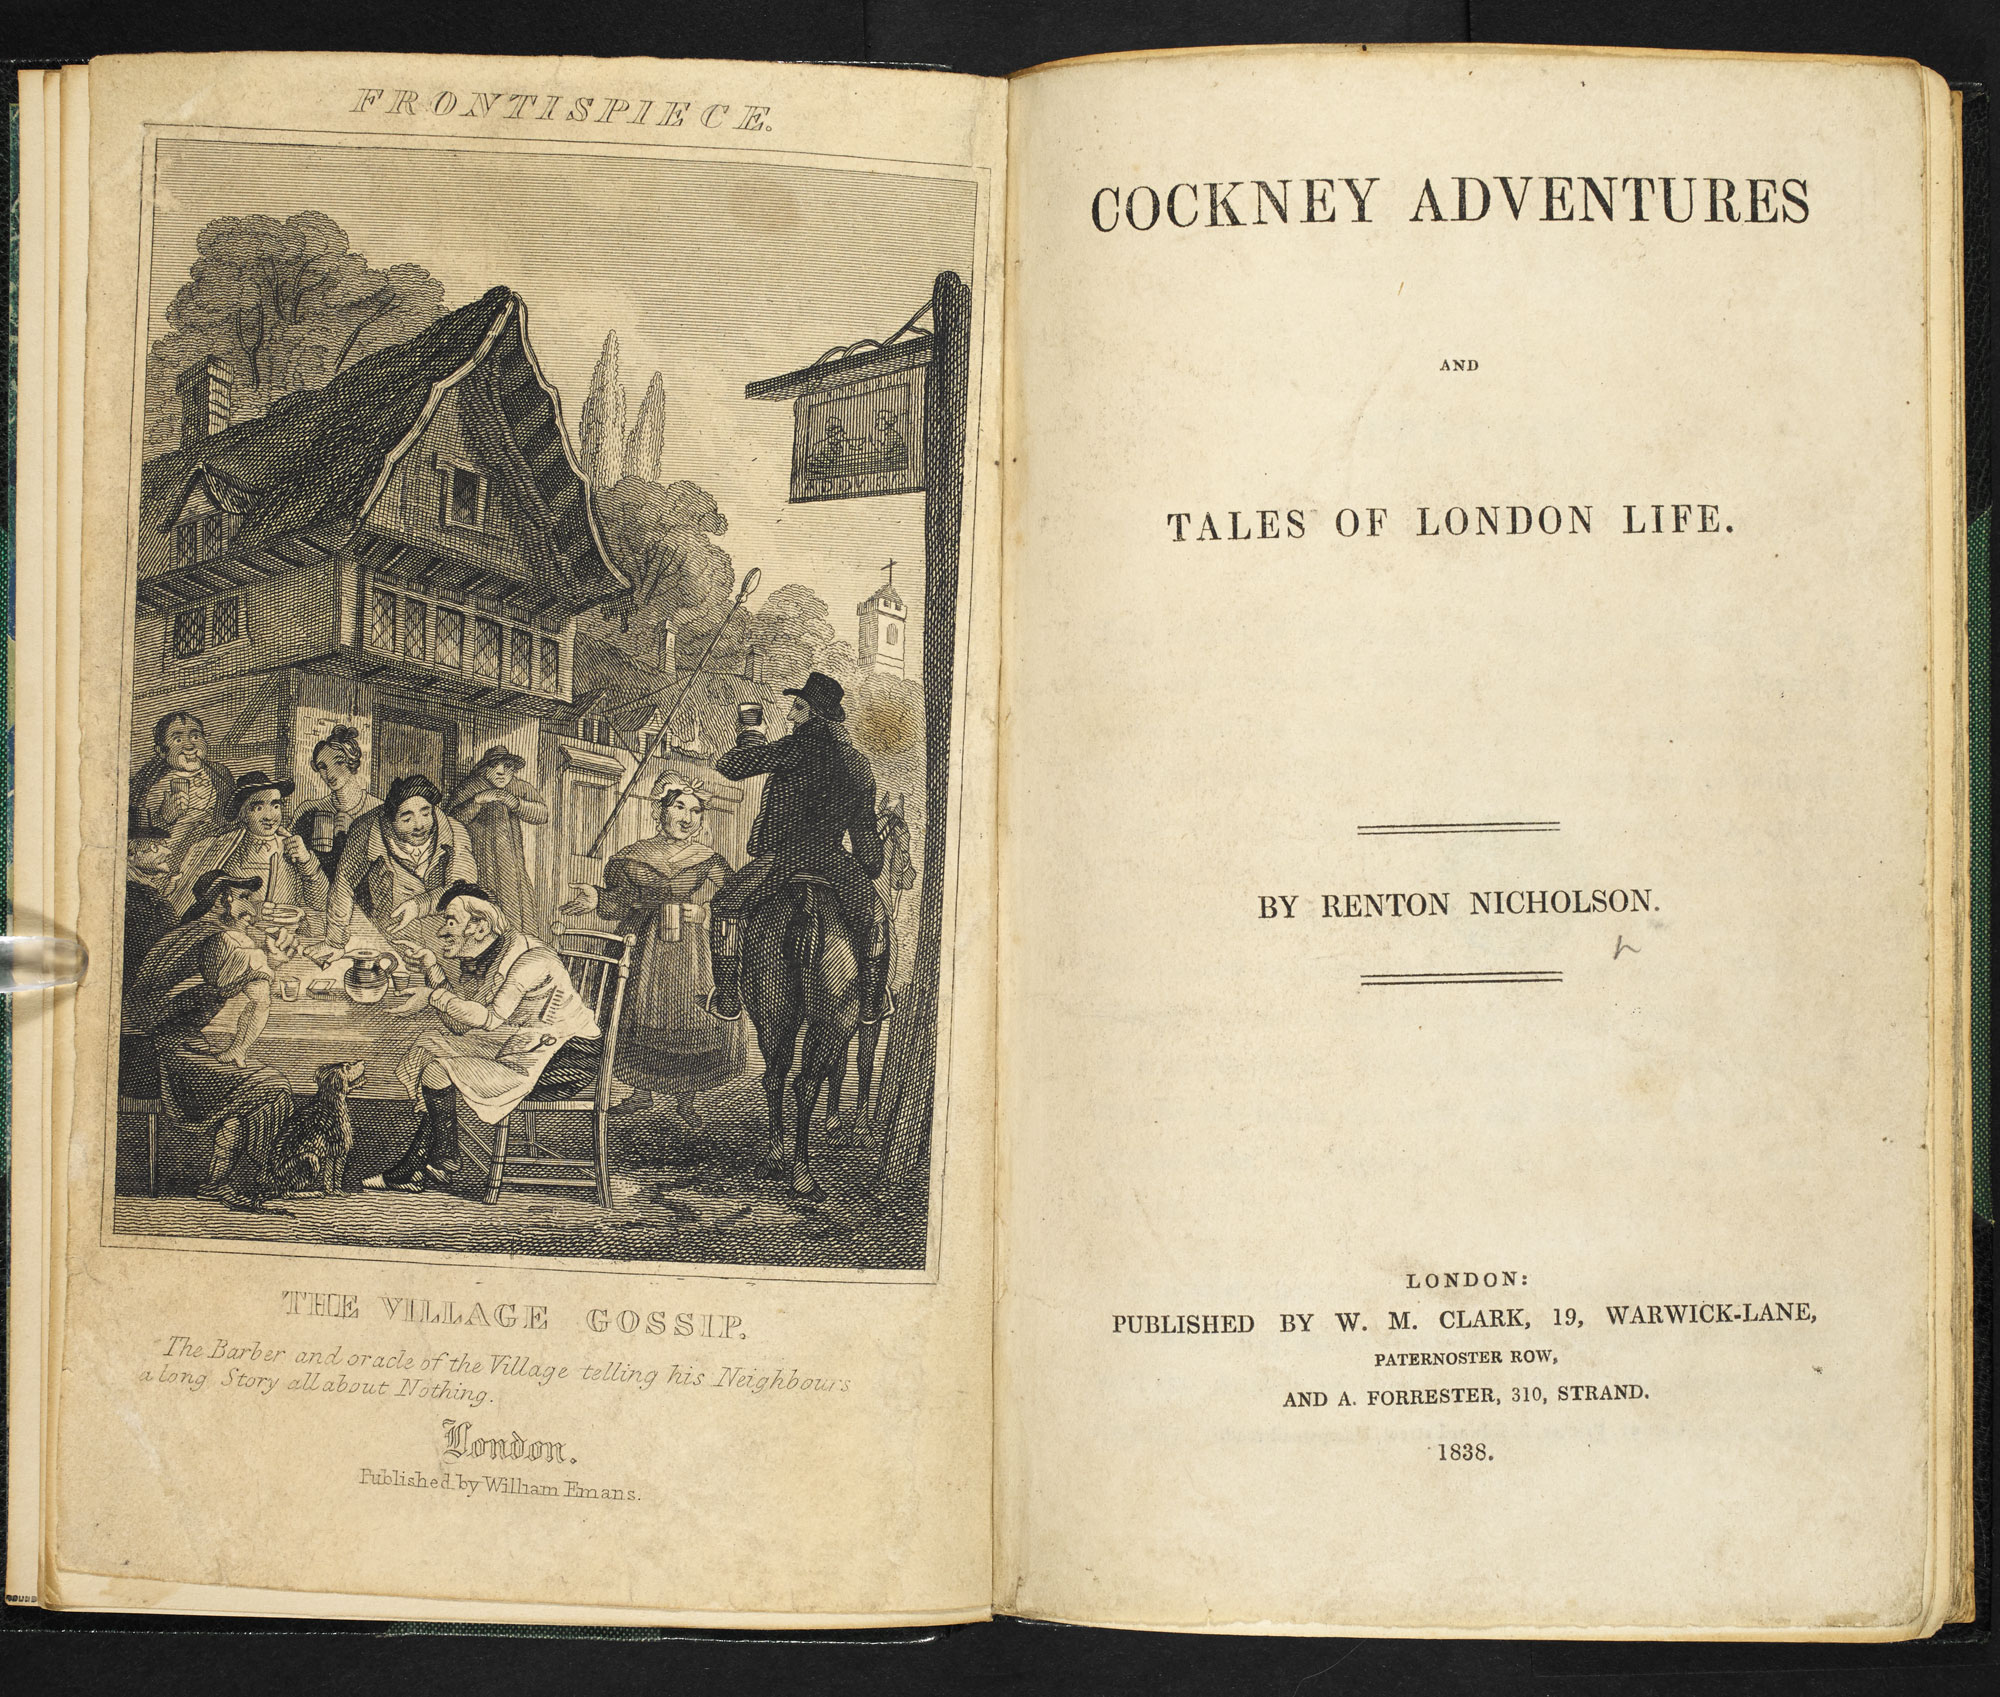 Penny dreadful, Cockney Adventures [page: frontispiece and title page]